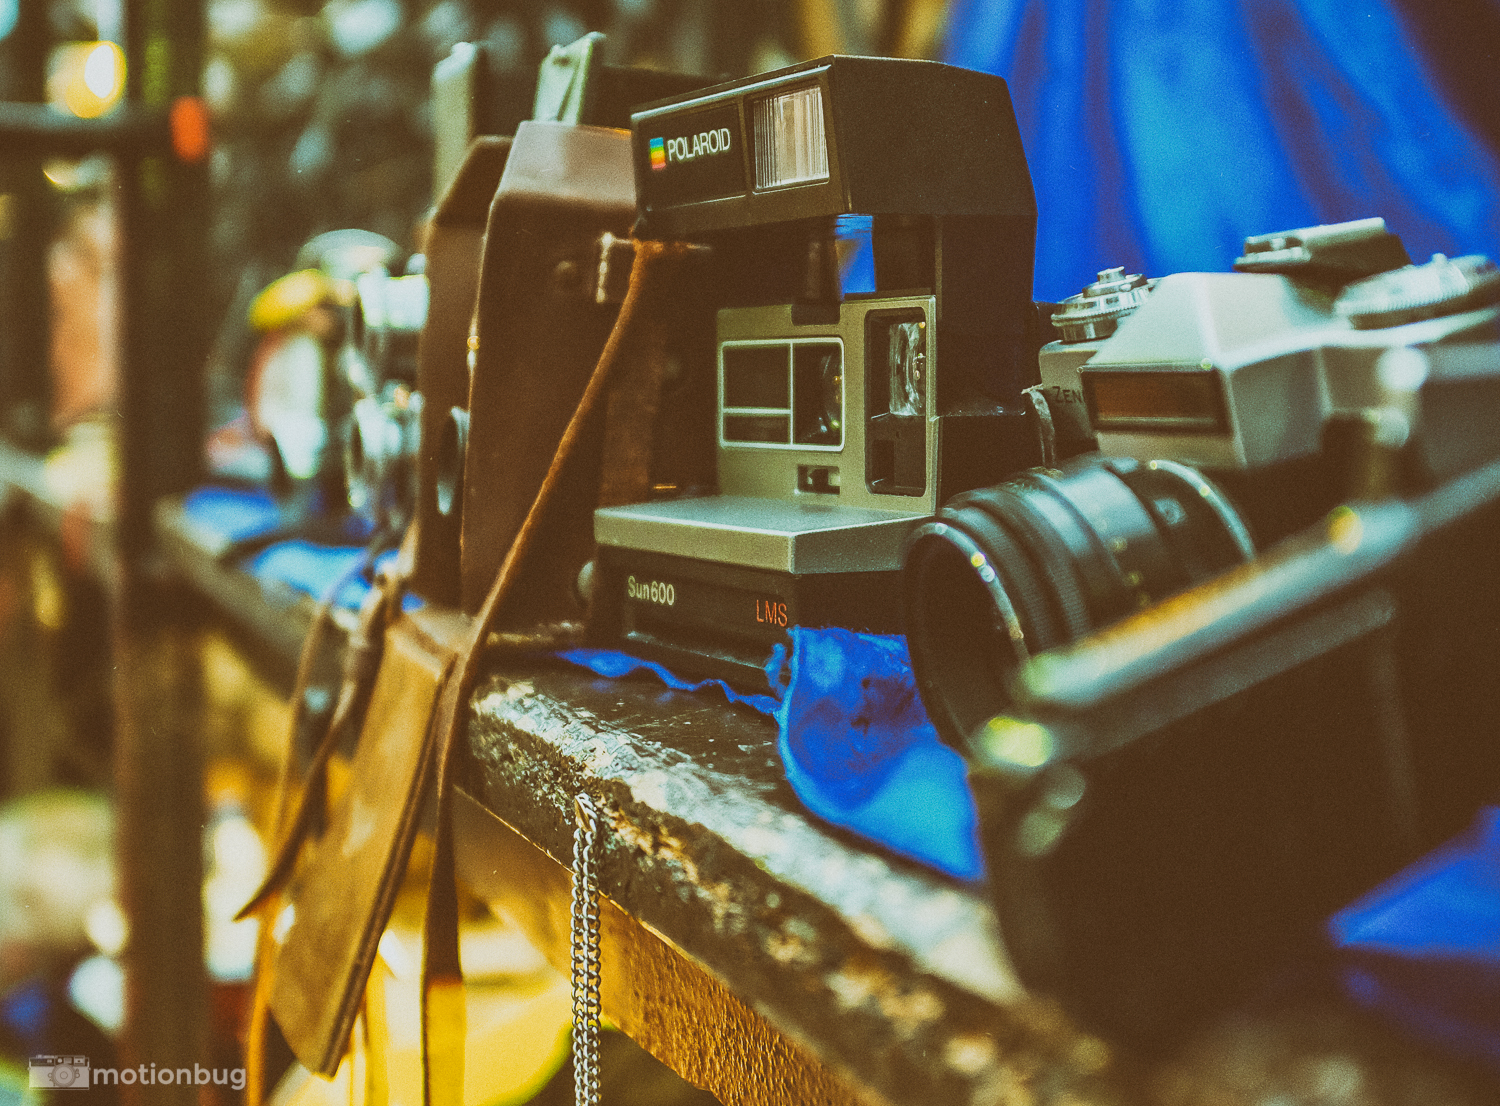 some old cameras in thecovent garden, London flea market